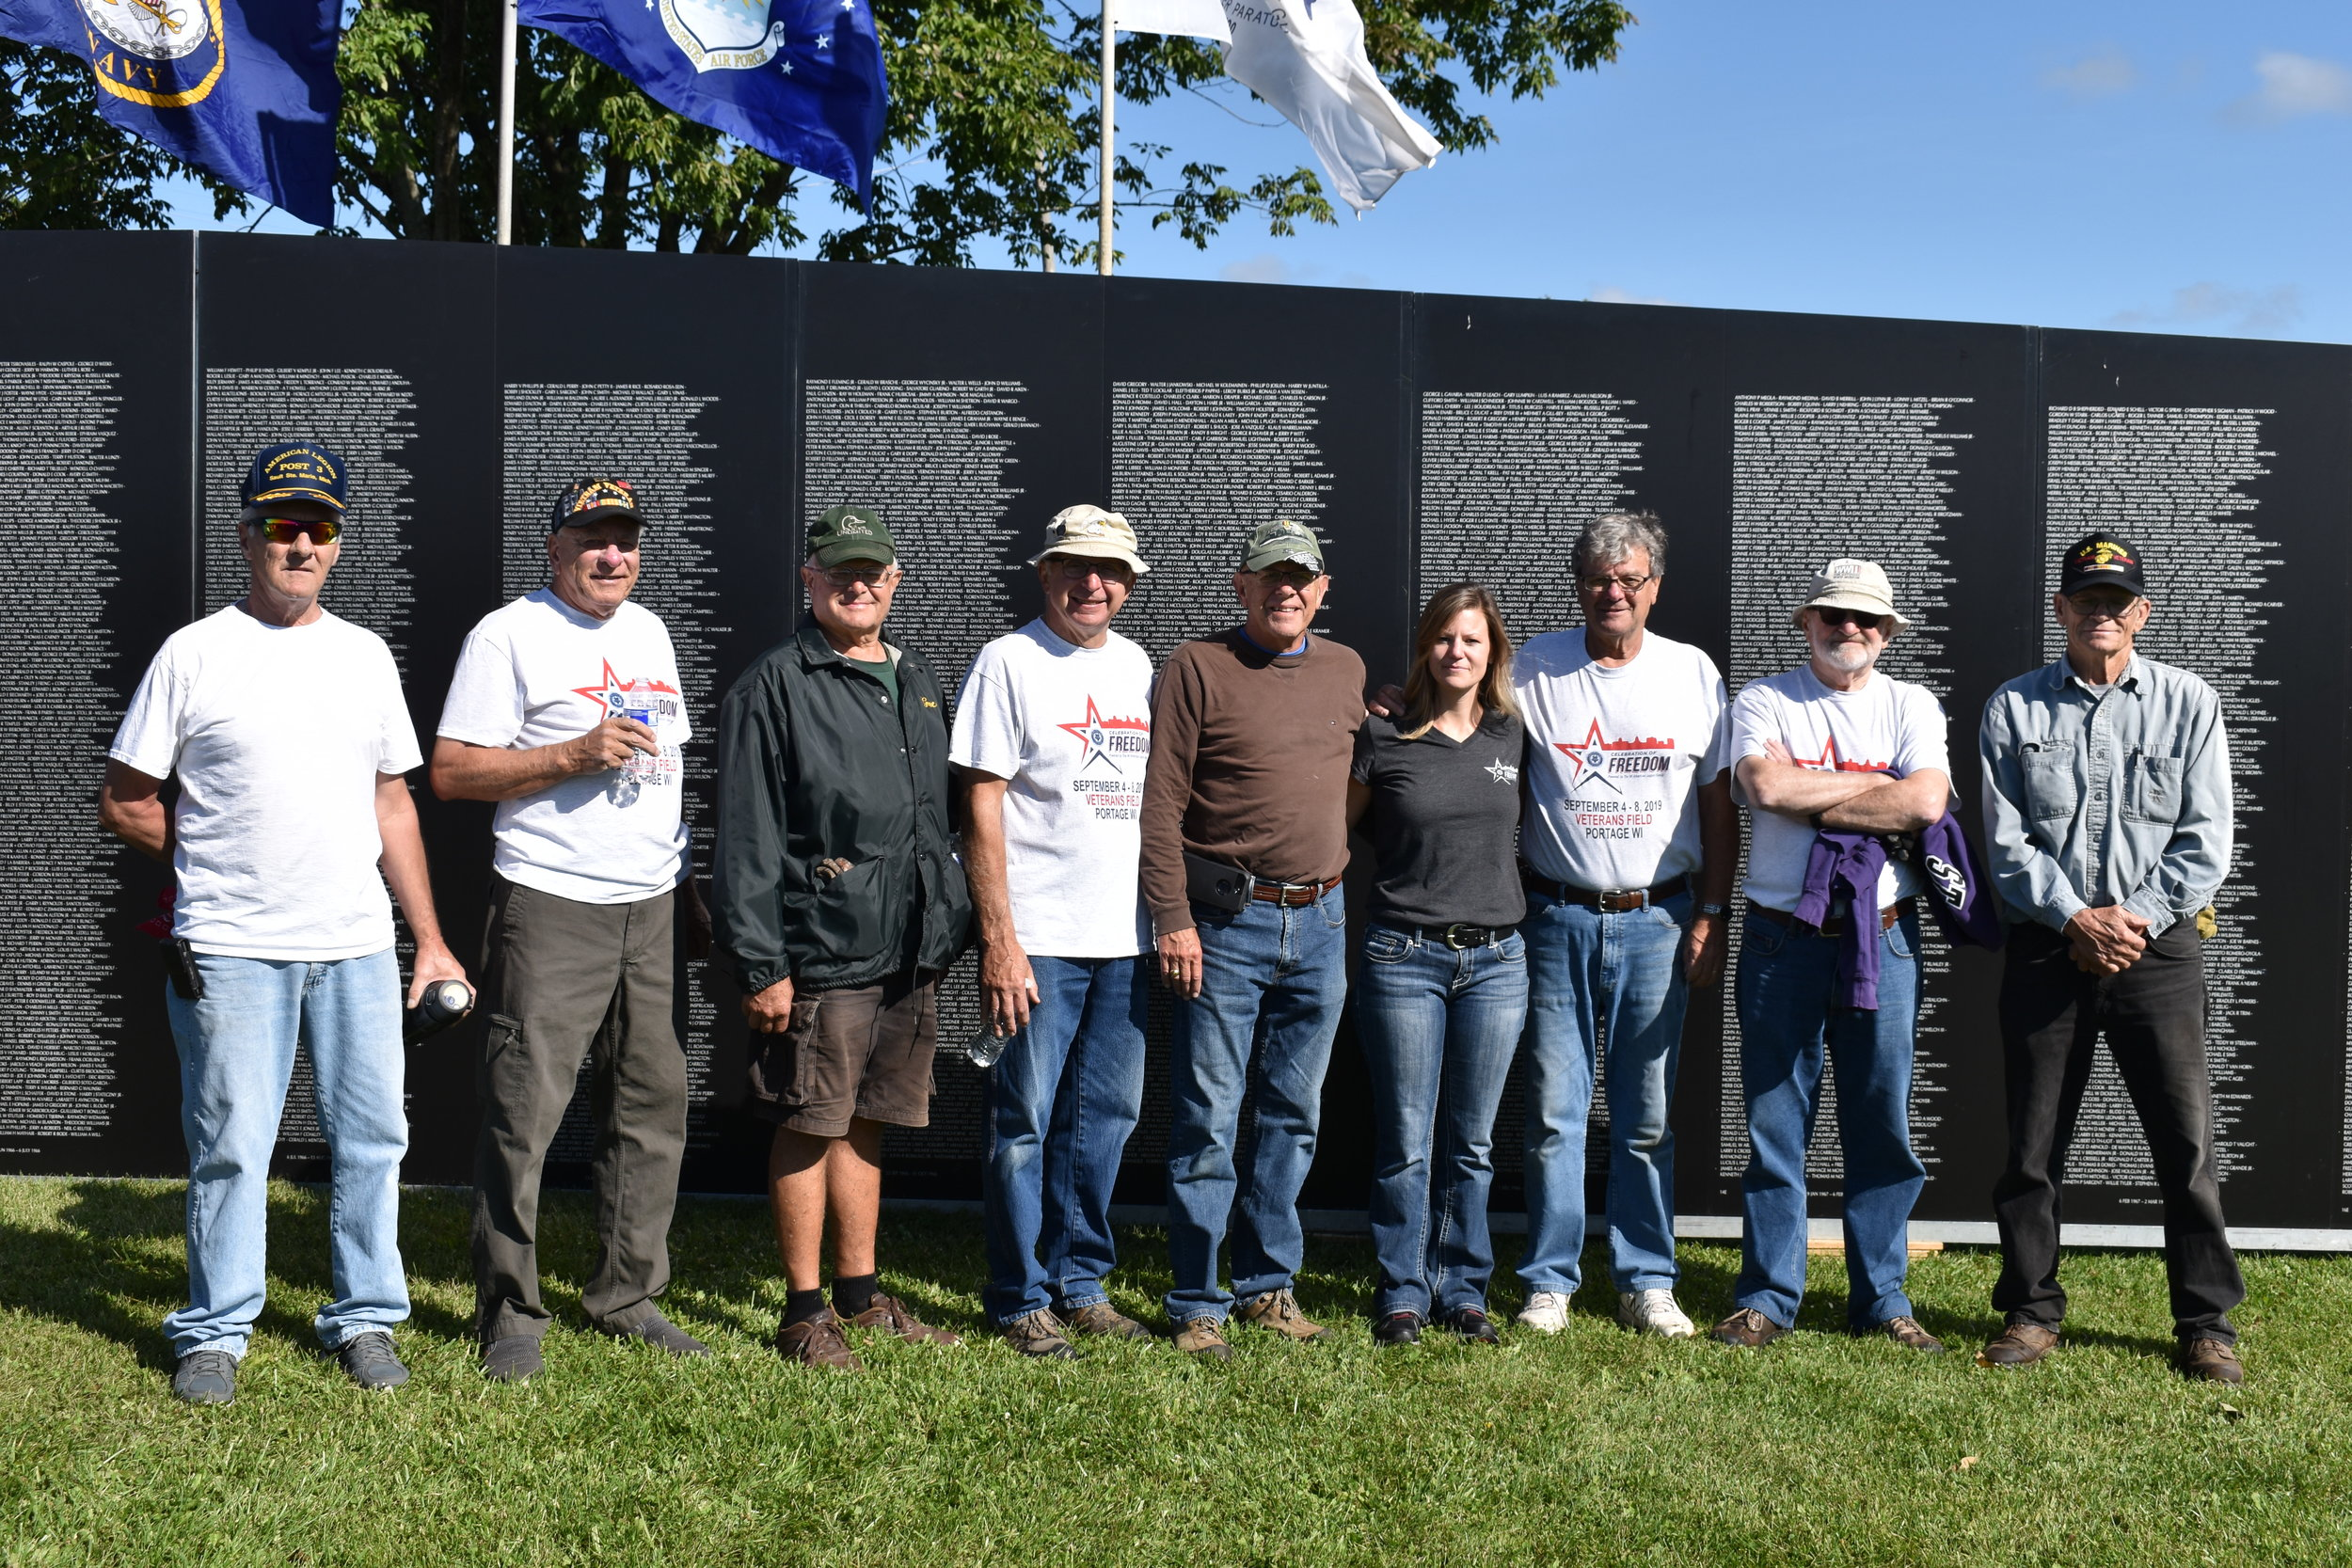 L-R Don Saunders Post 47 Army, Gary Anderson Post 47 Marine Corps, Eugene Pribnow Post 47 Navy, Norm Bednarek Post 47 Adjutant- Army, Pat Hartley Post 47 US Navy Riverines, American Legion of Wisconsin Adjutant- Amber Nikolai-Navy, Dean Simonson Post 47 Commander Army, Dave Eulberg Post 47 Army, and Jerry Brown US Marine Corp.